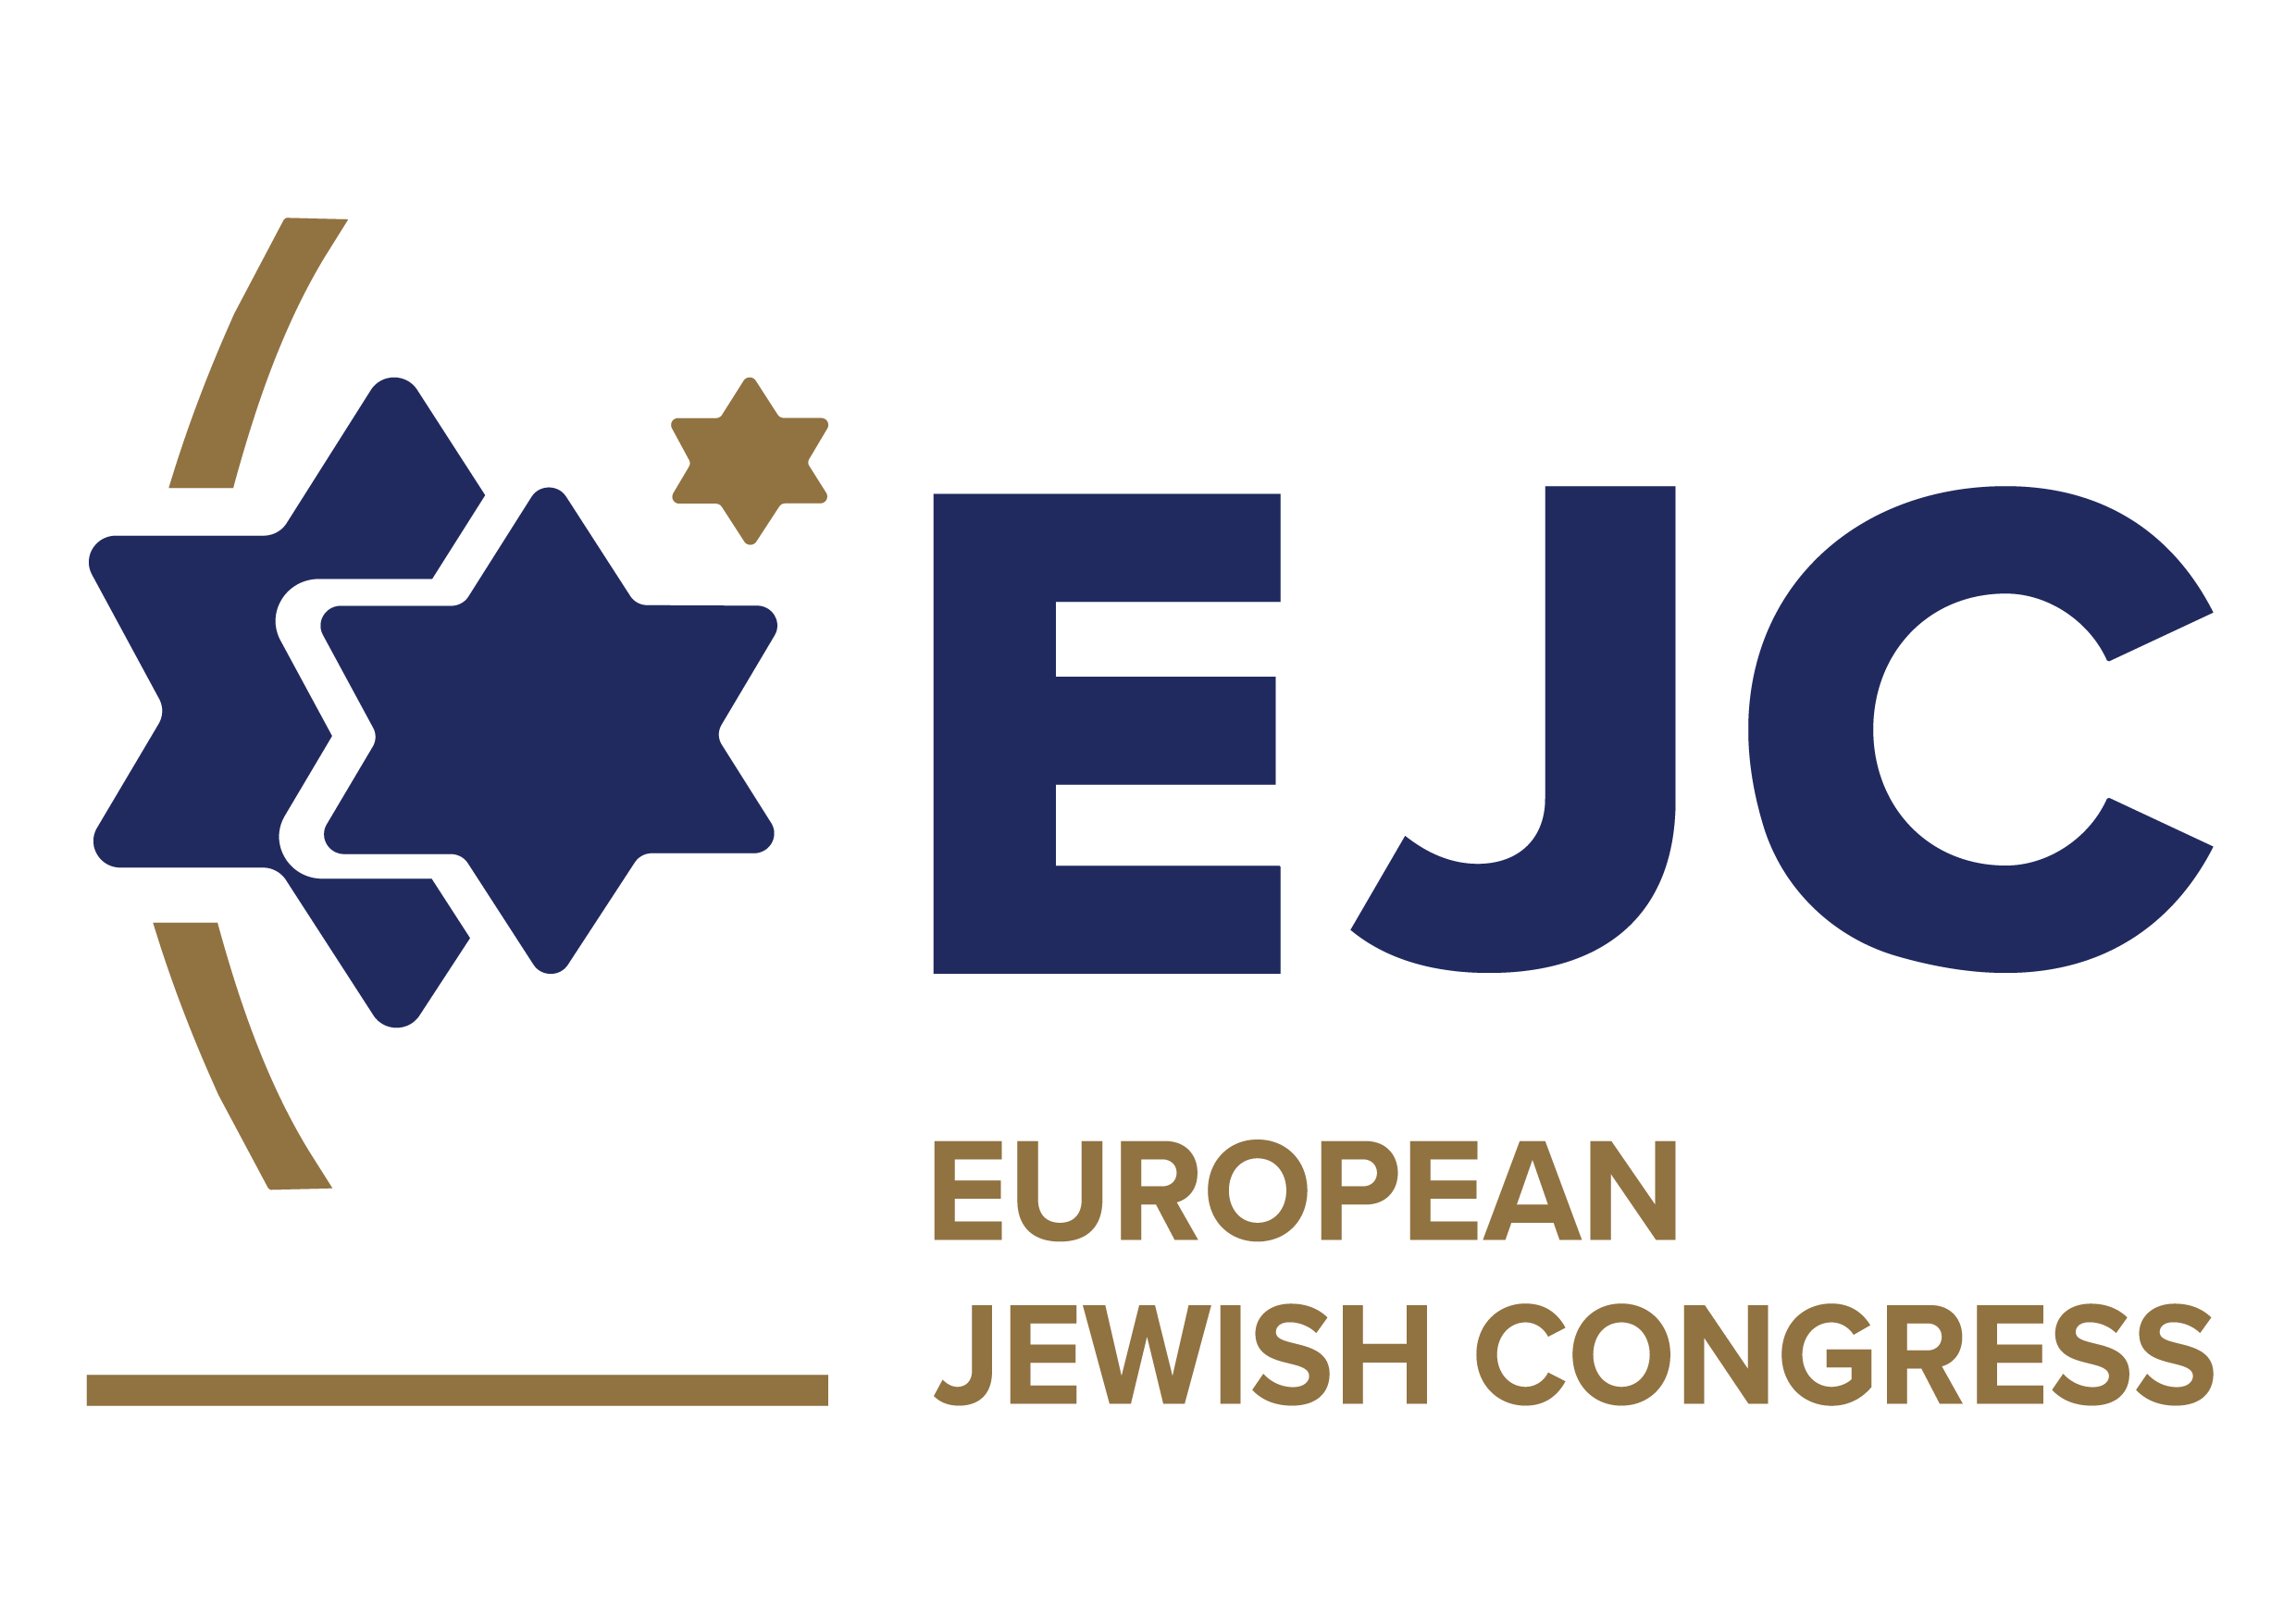 European Jewish Congress